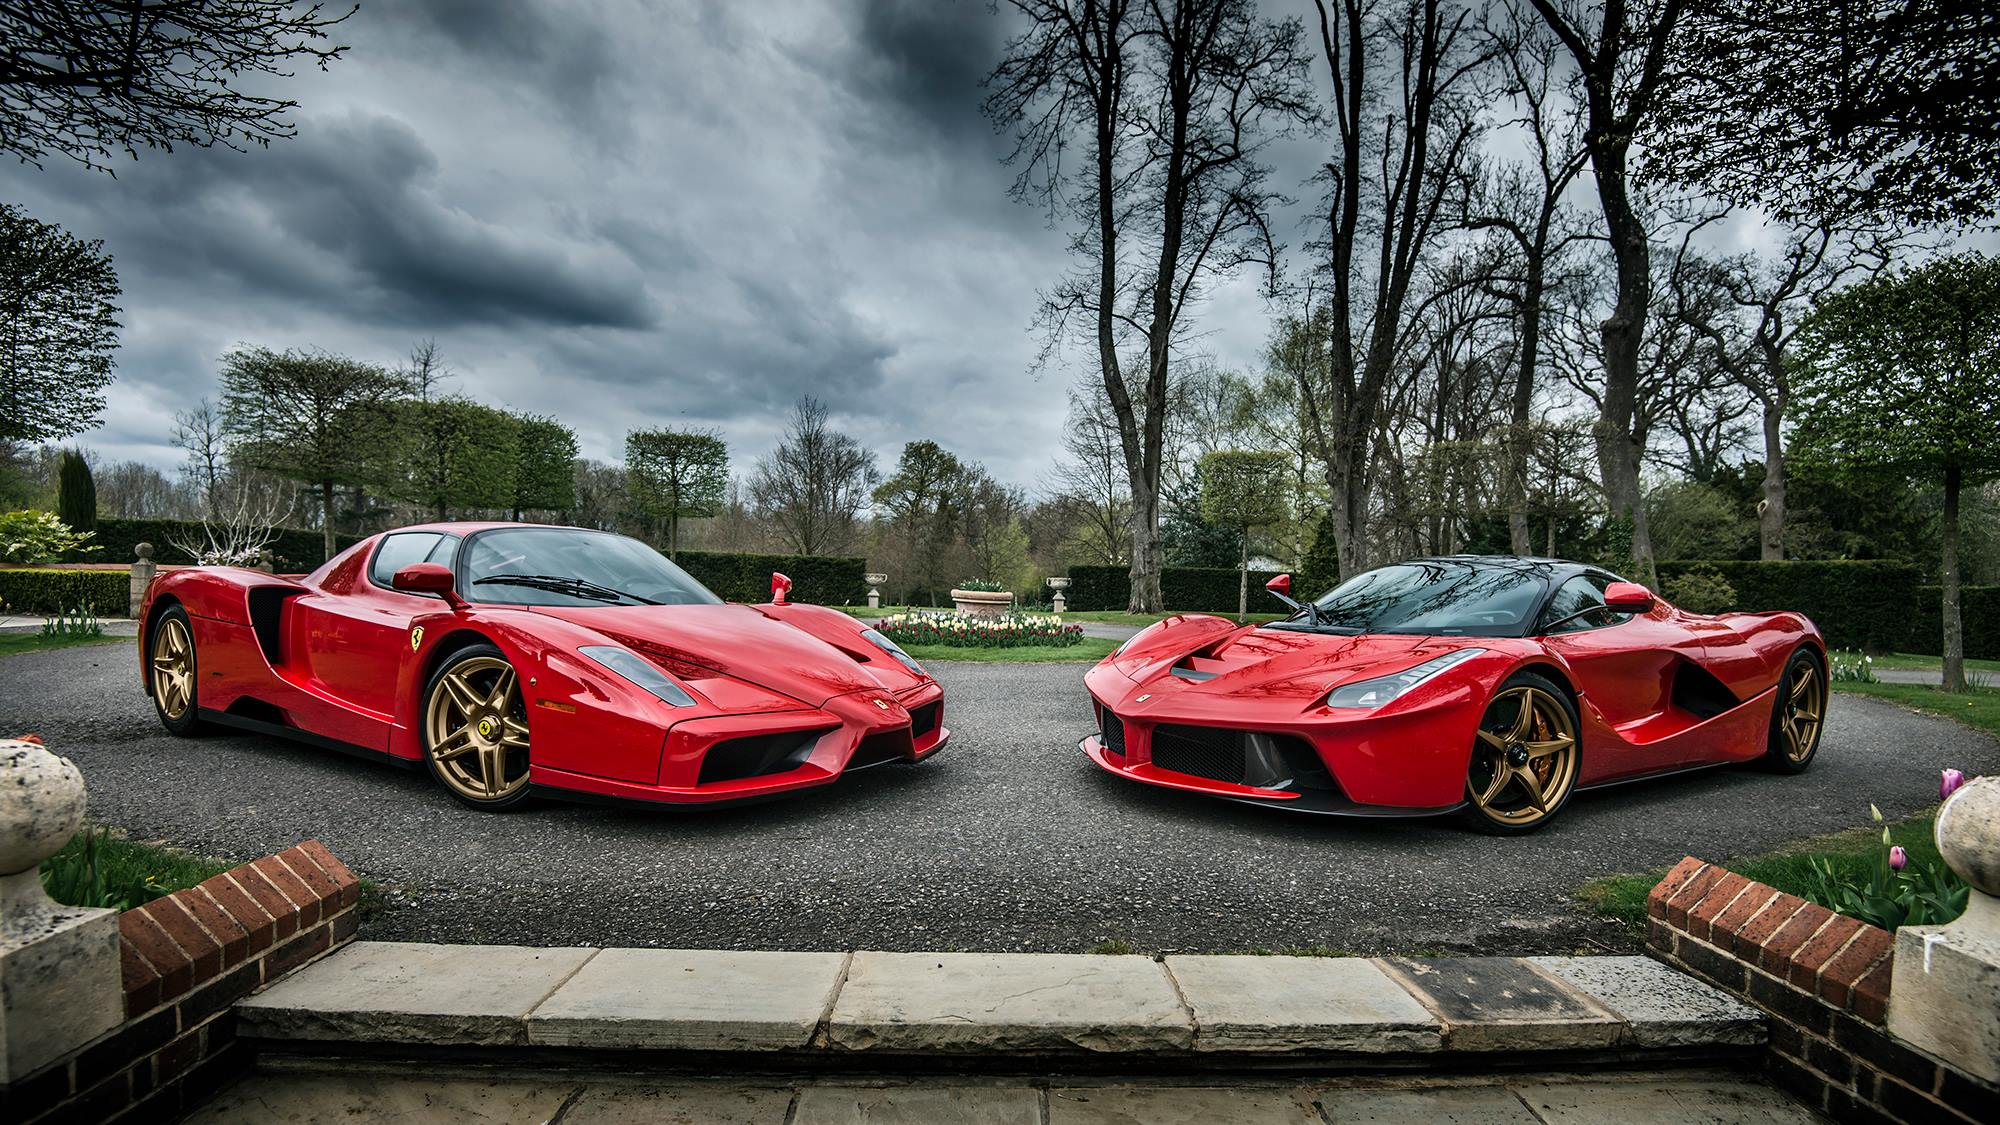 Evolution Ferrari Enzo And Laferrari Roso Corsa Color